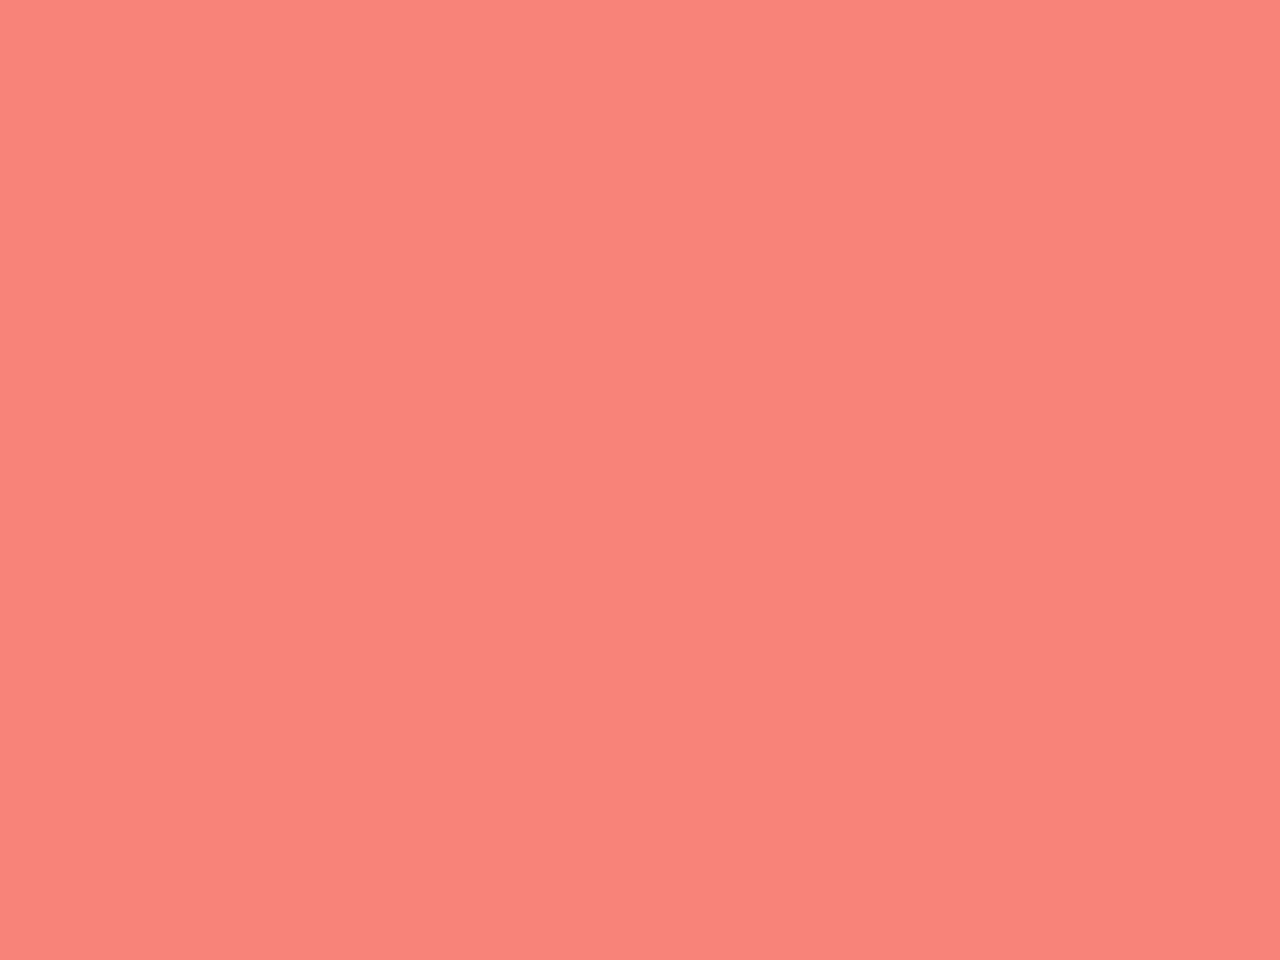 1280x960 Coral Pink Solid Color Background